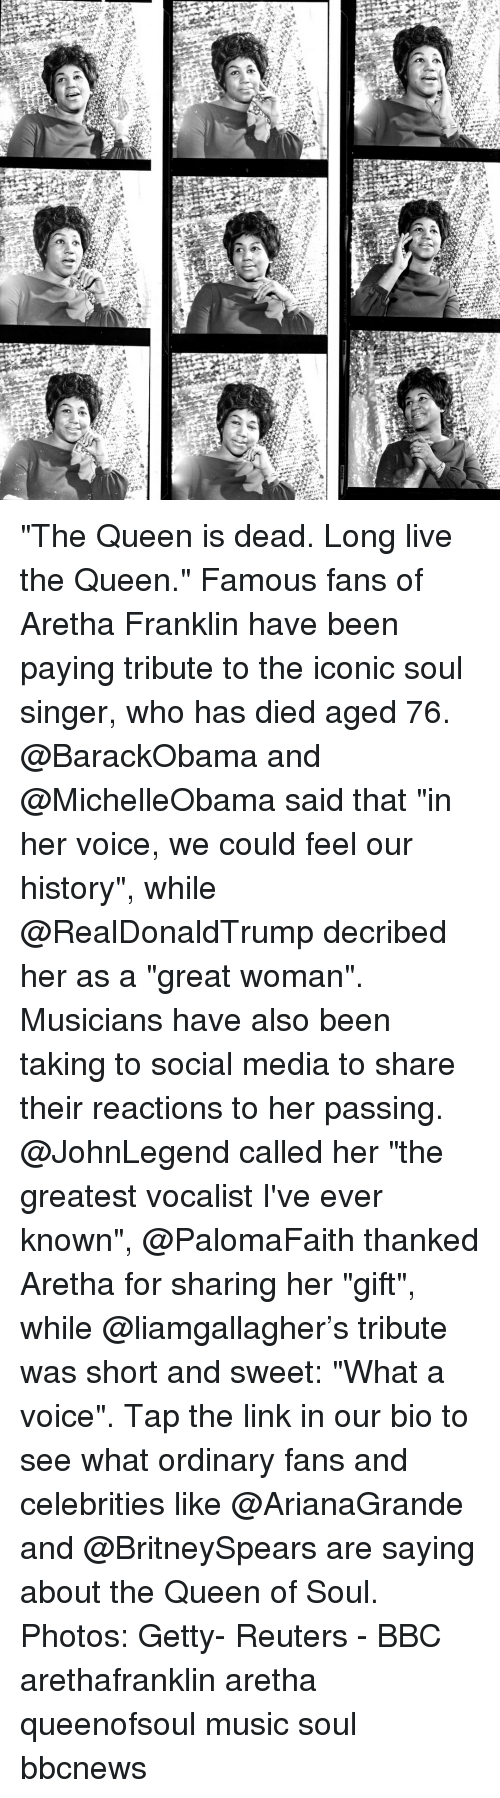 "Memes, Music, and Social Media: ""The Queen is dead. Long live the Queen."" Famous fans of Aretha Franklin have been paying tribute to the iconic soul singer, who has died aged 76. @BarackObama and @MichelleObama said that ""in her voice, we could feel our history"", while @RealDonaldTrump decribed her as a ""great woman"". Musicians have also been taking to social media to share their reactions to her passing. @JohnLegend called her ""the greatest vocalist I've ever known"", @PalomaFaith thanked Aretha for sharing her ""gift"", while @liamgallagher's tribute was short and sweet: ""What a voice"". Tap the link in our bio to see what ordinary fans and celebrities like @ArianaGrande and @BritneySpears are saying about the Queen of Soul. Photos: Getty- Reuters - BBC arethafranklin aretha queenofsoul music soul bbcnews"